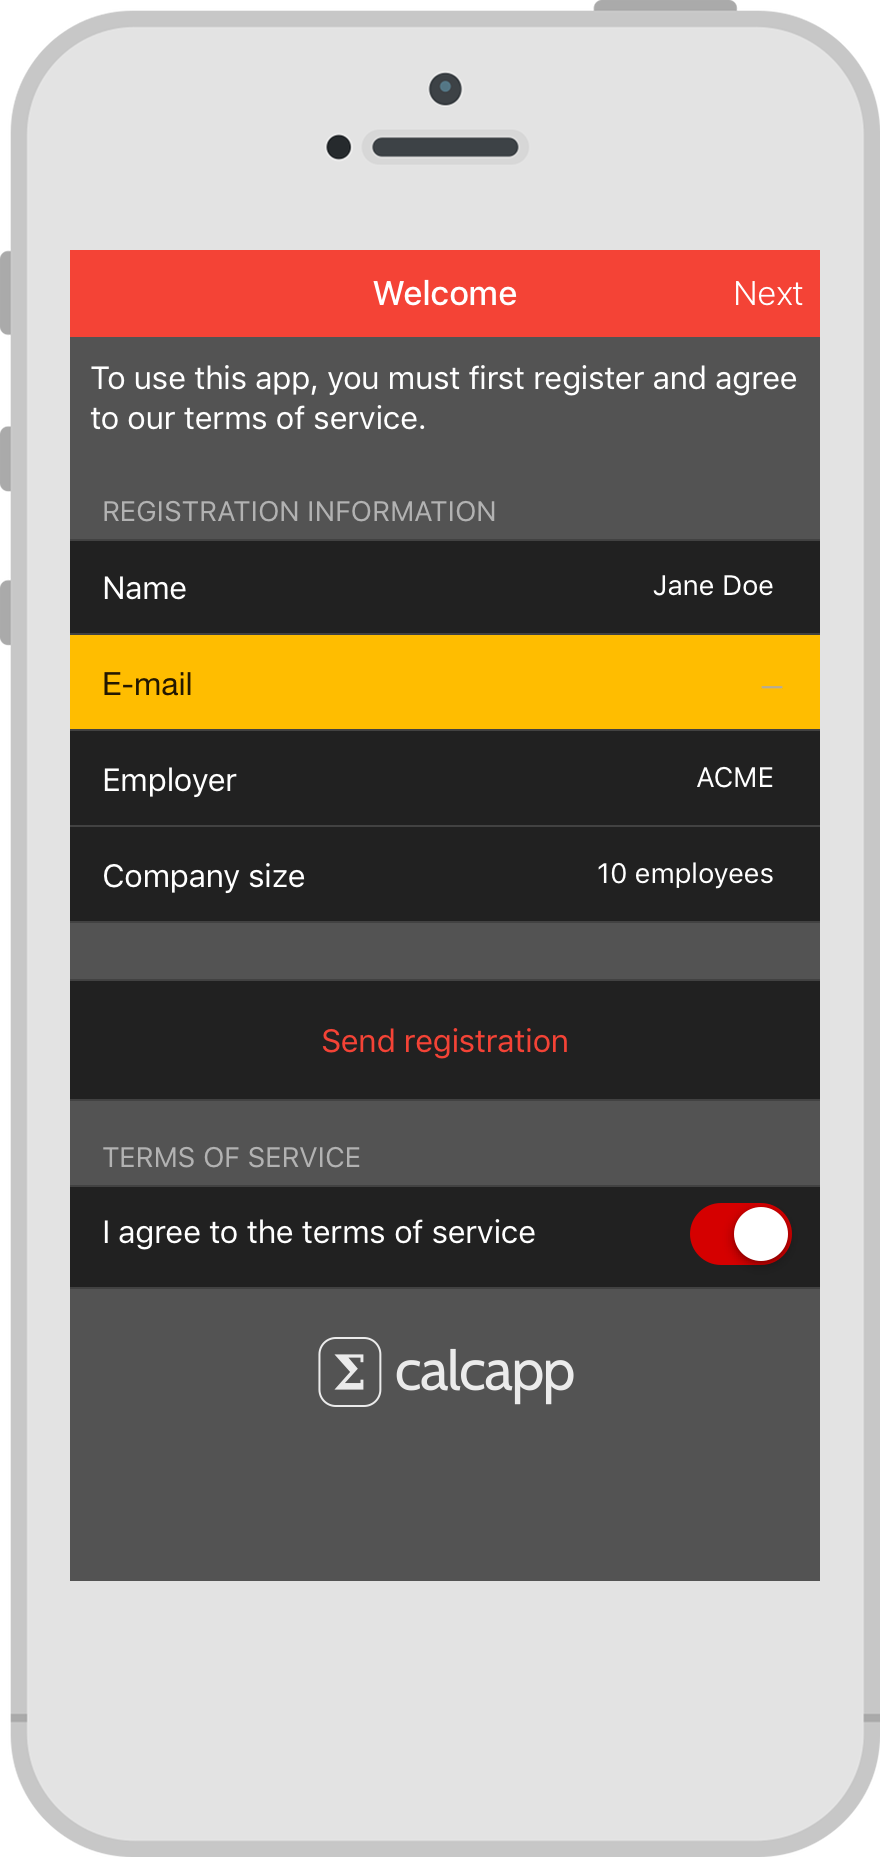 A registration form with a custom color scheme